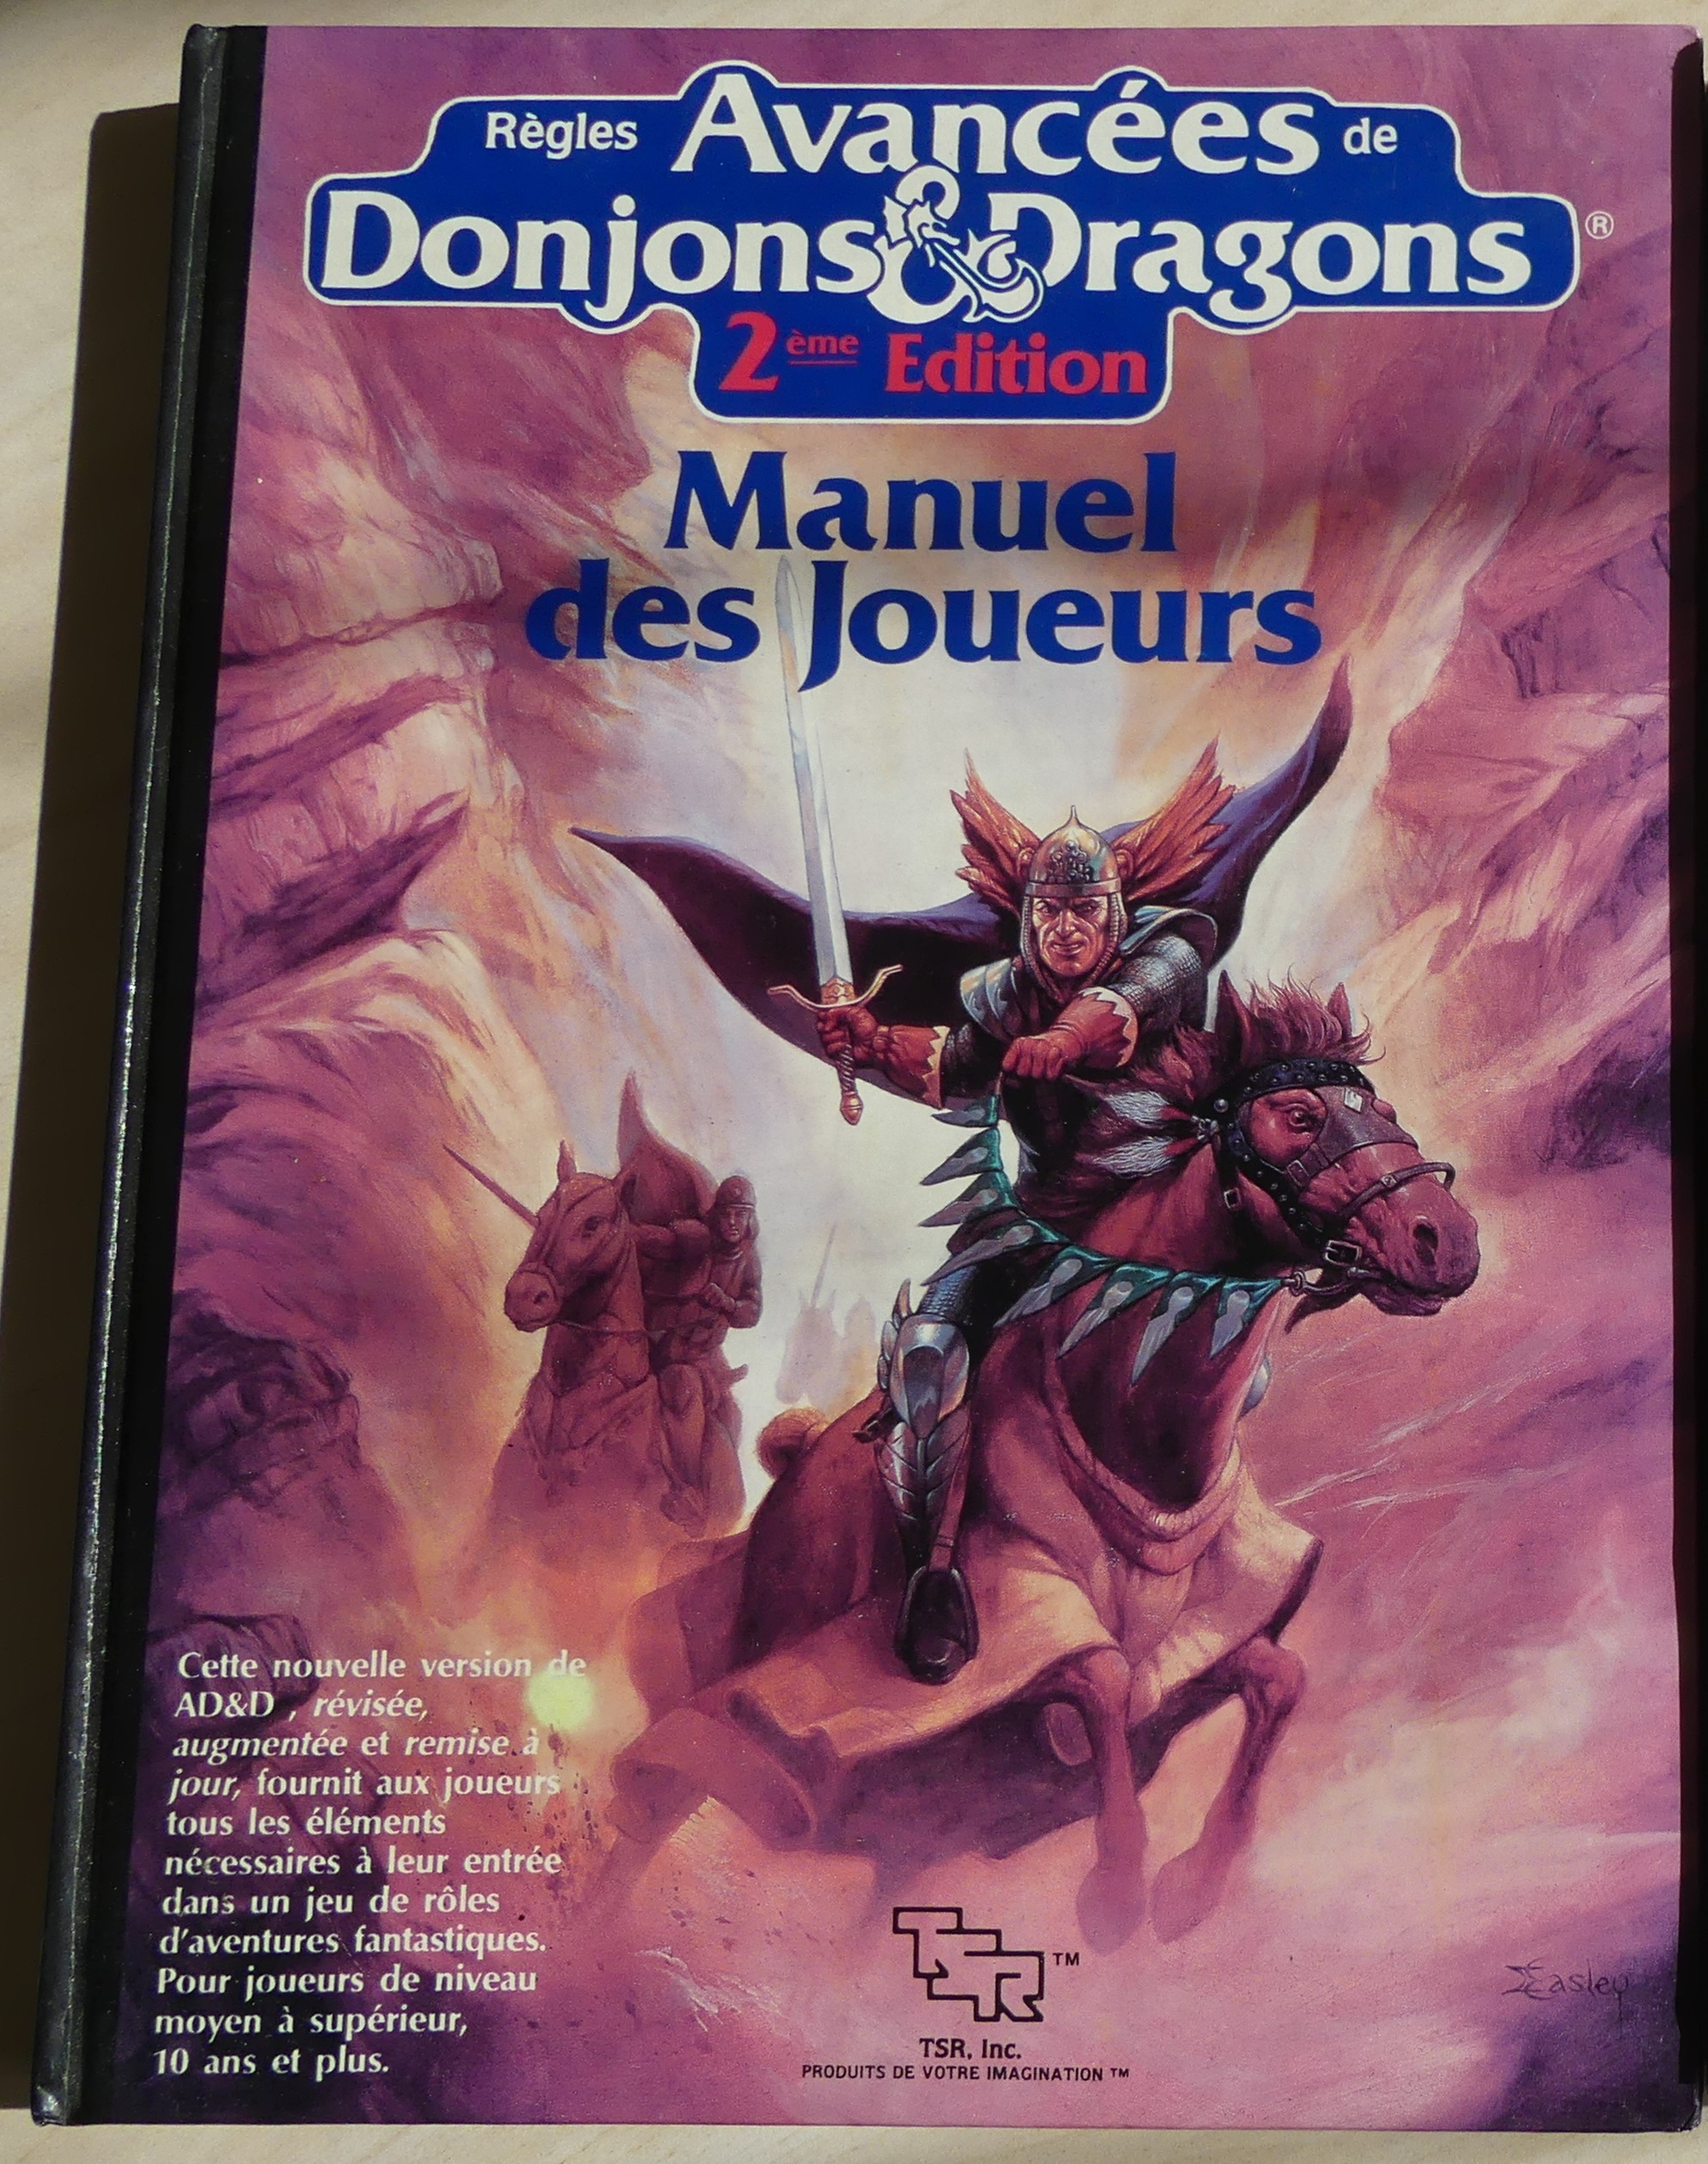 advanced d&d 2nd edition. Manuel des joueurs